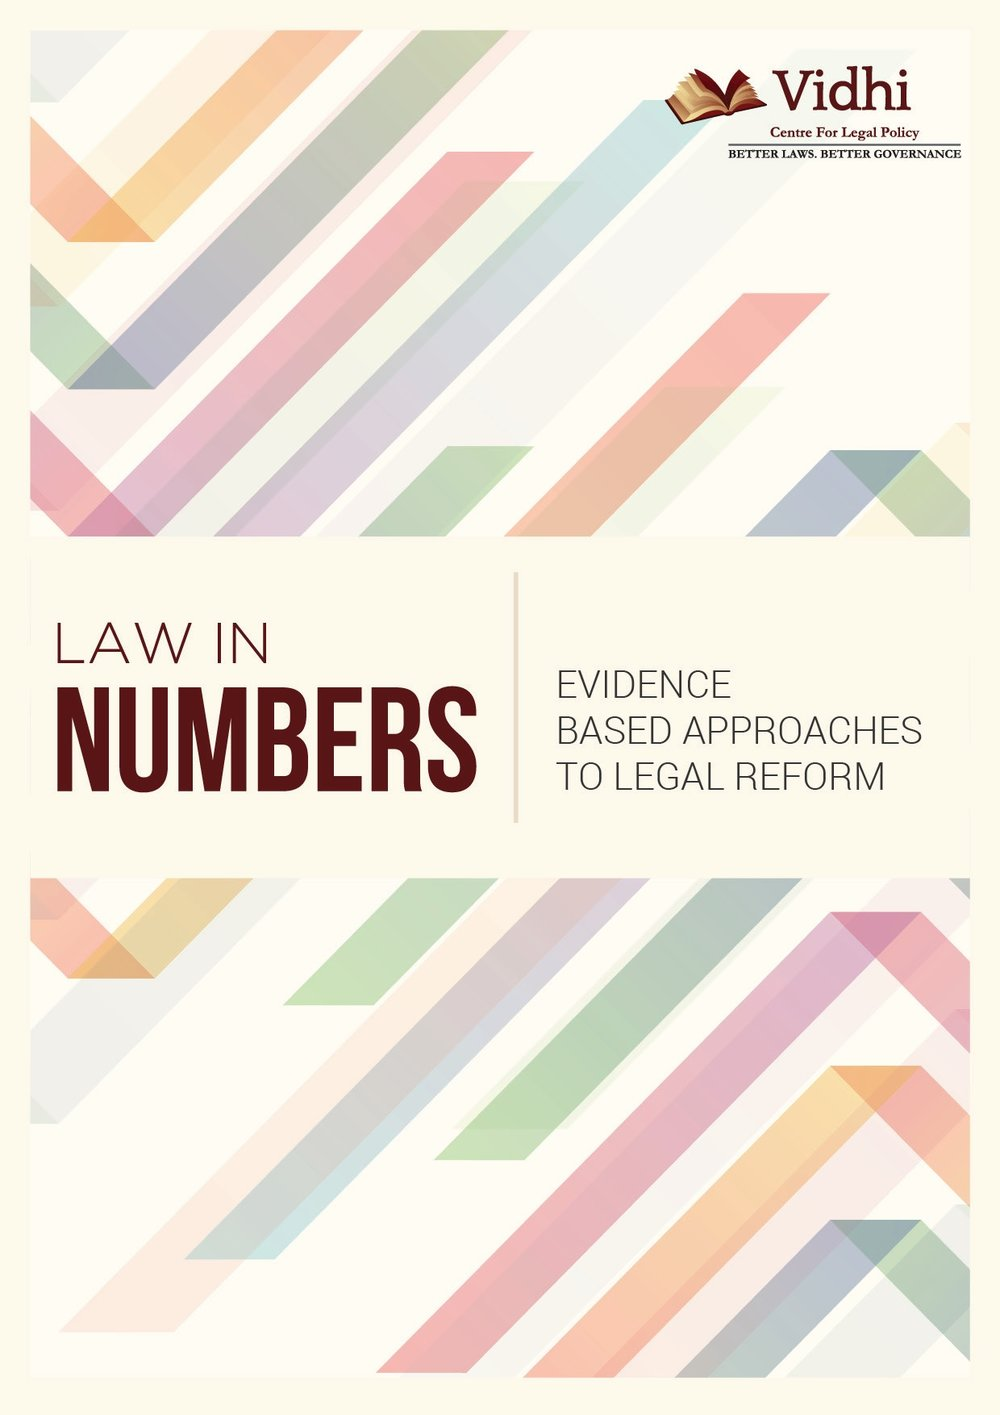 Event: Law in Numbers - Evidence-based Approaches to Legal Reform 1